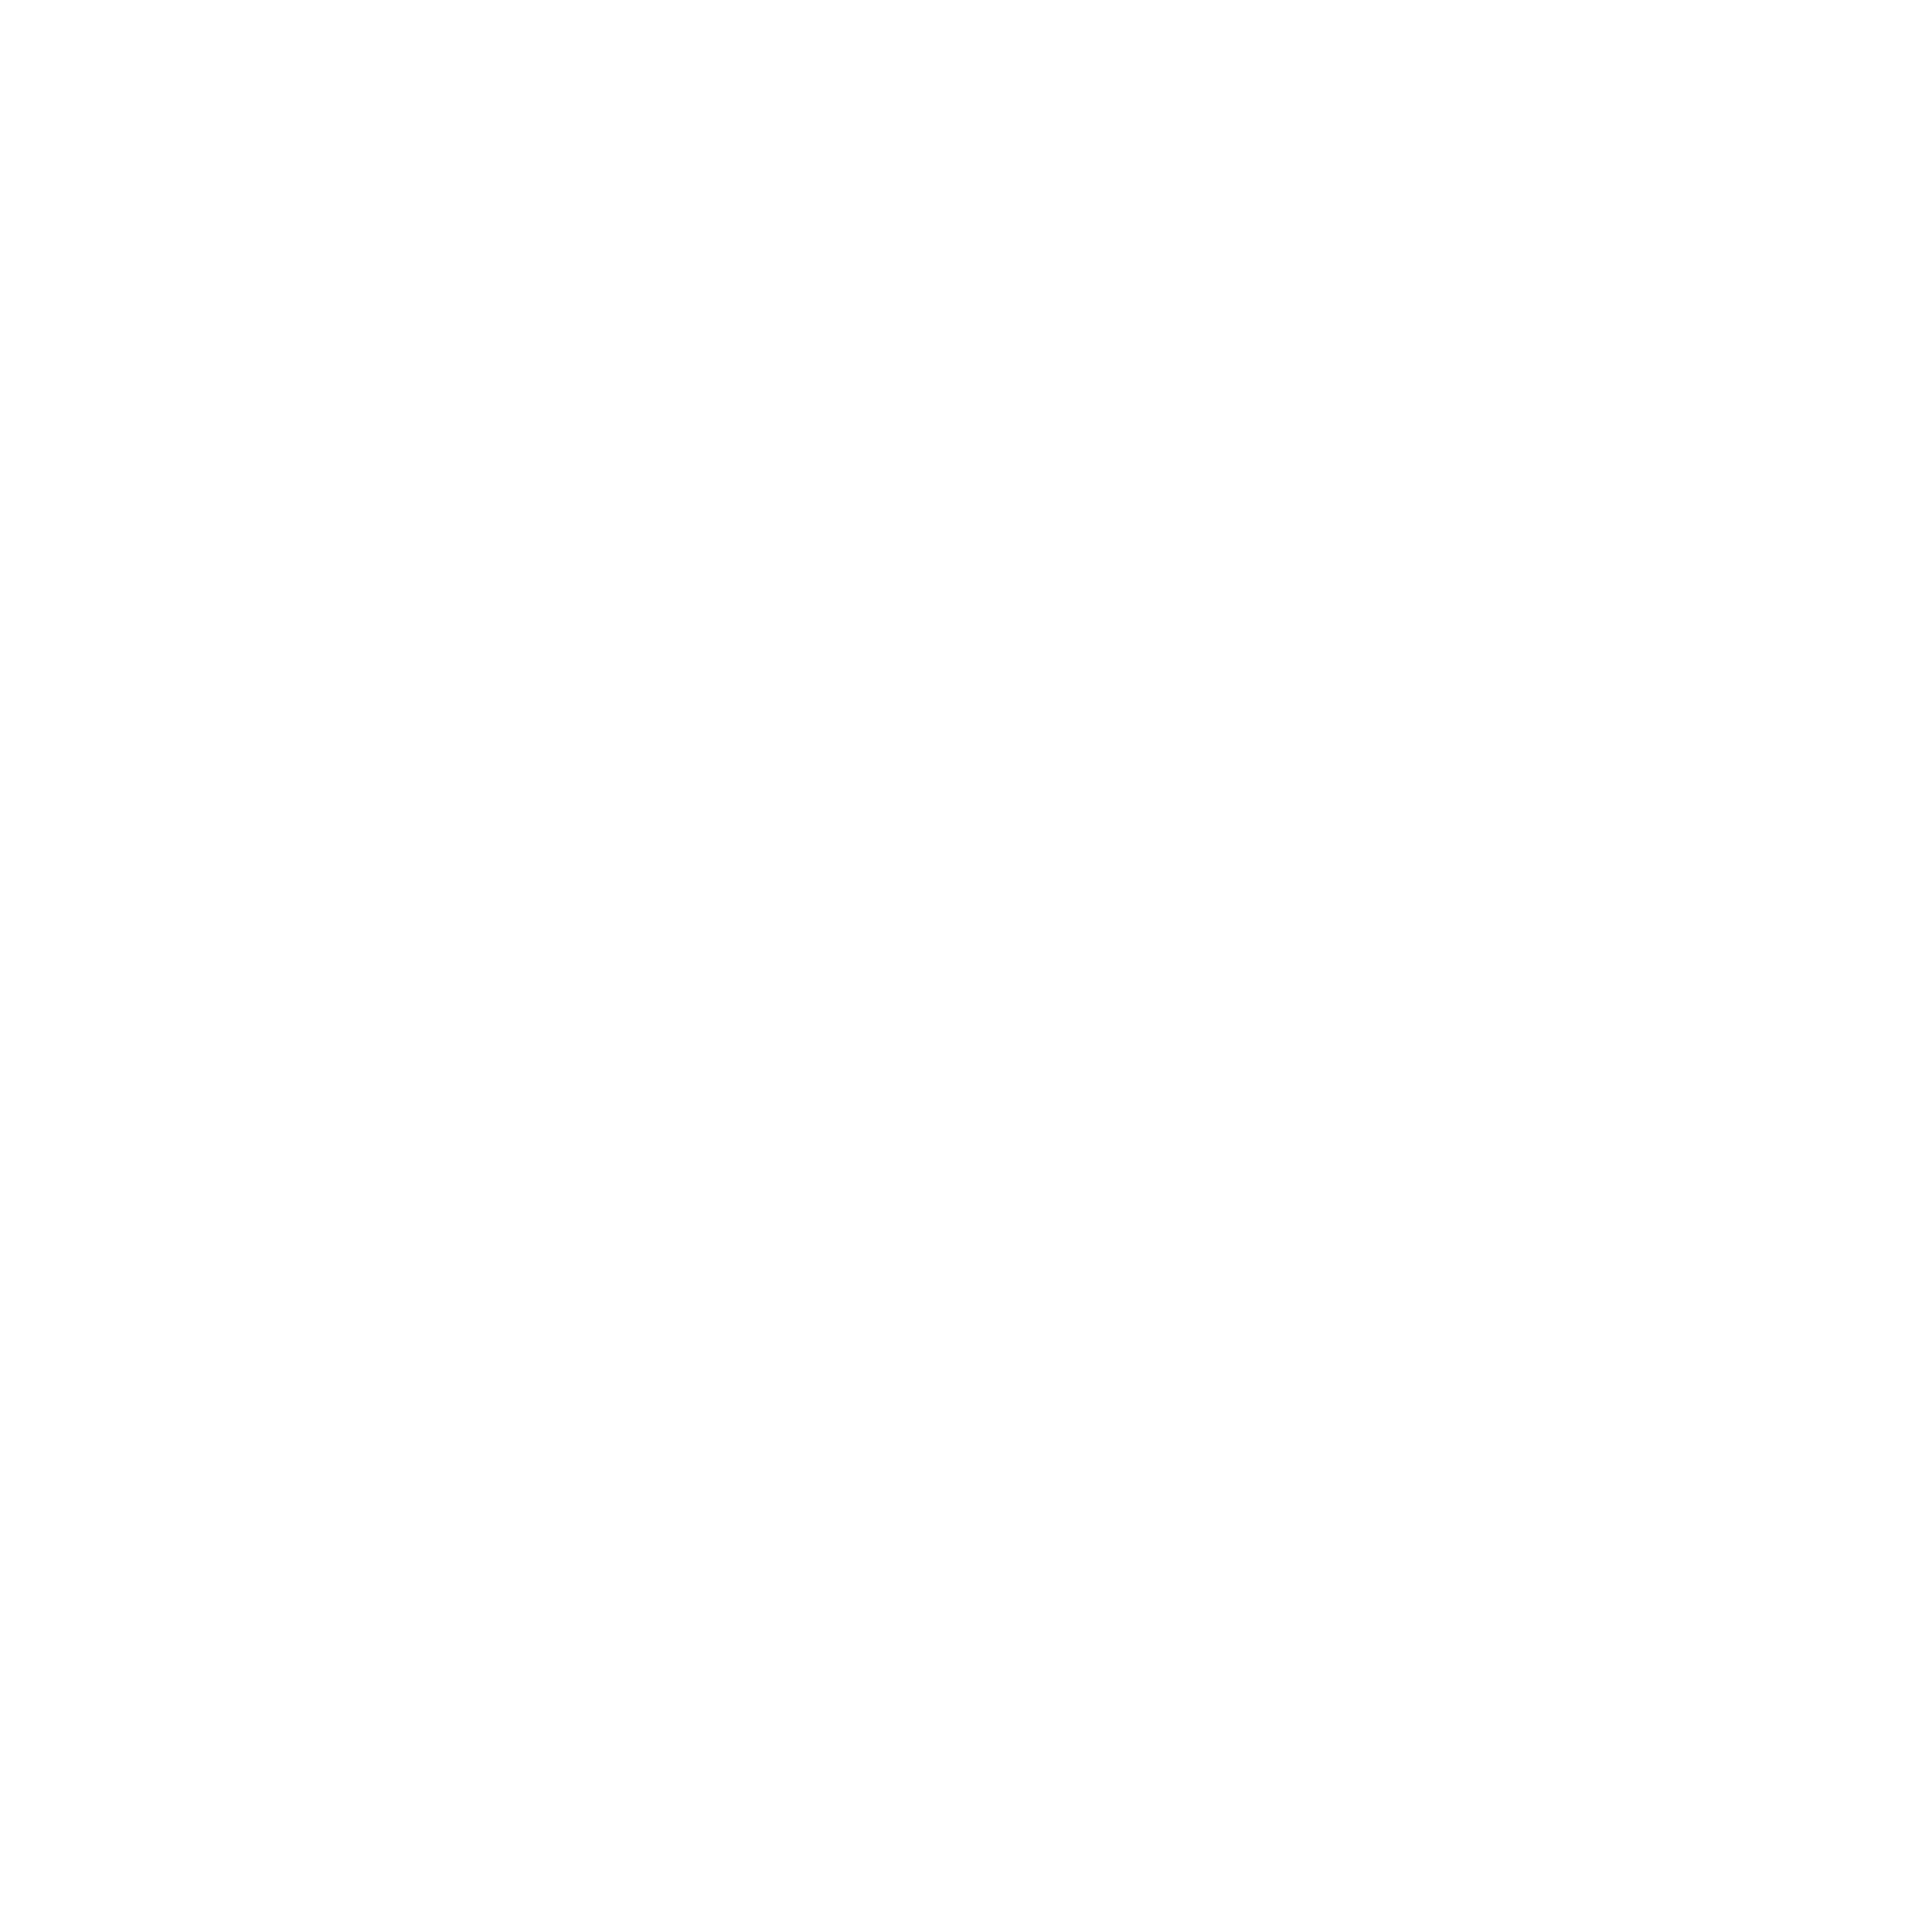 Foodscape.png